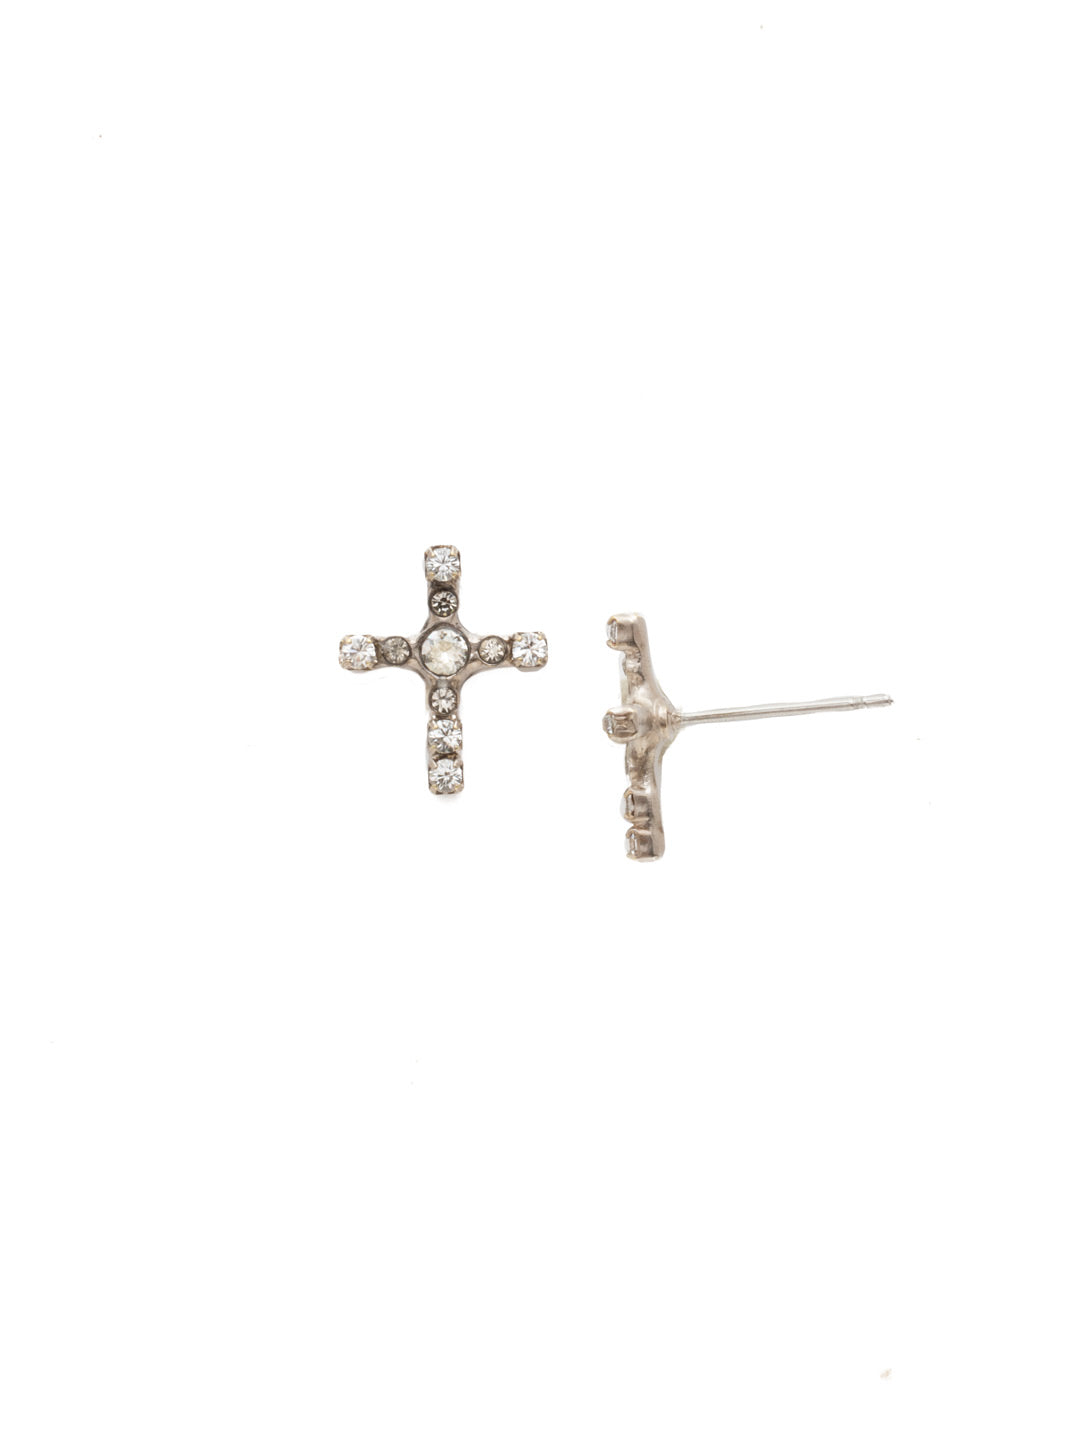 Sorrelli Miley Stud Earrings - Gabrielle's Biloxi